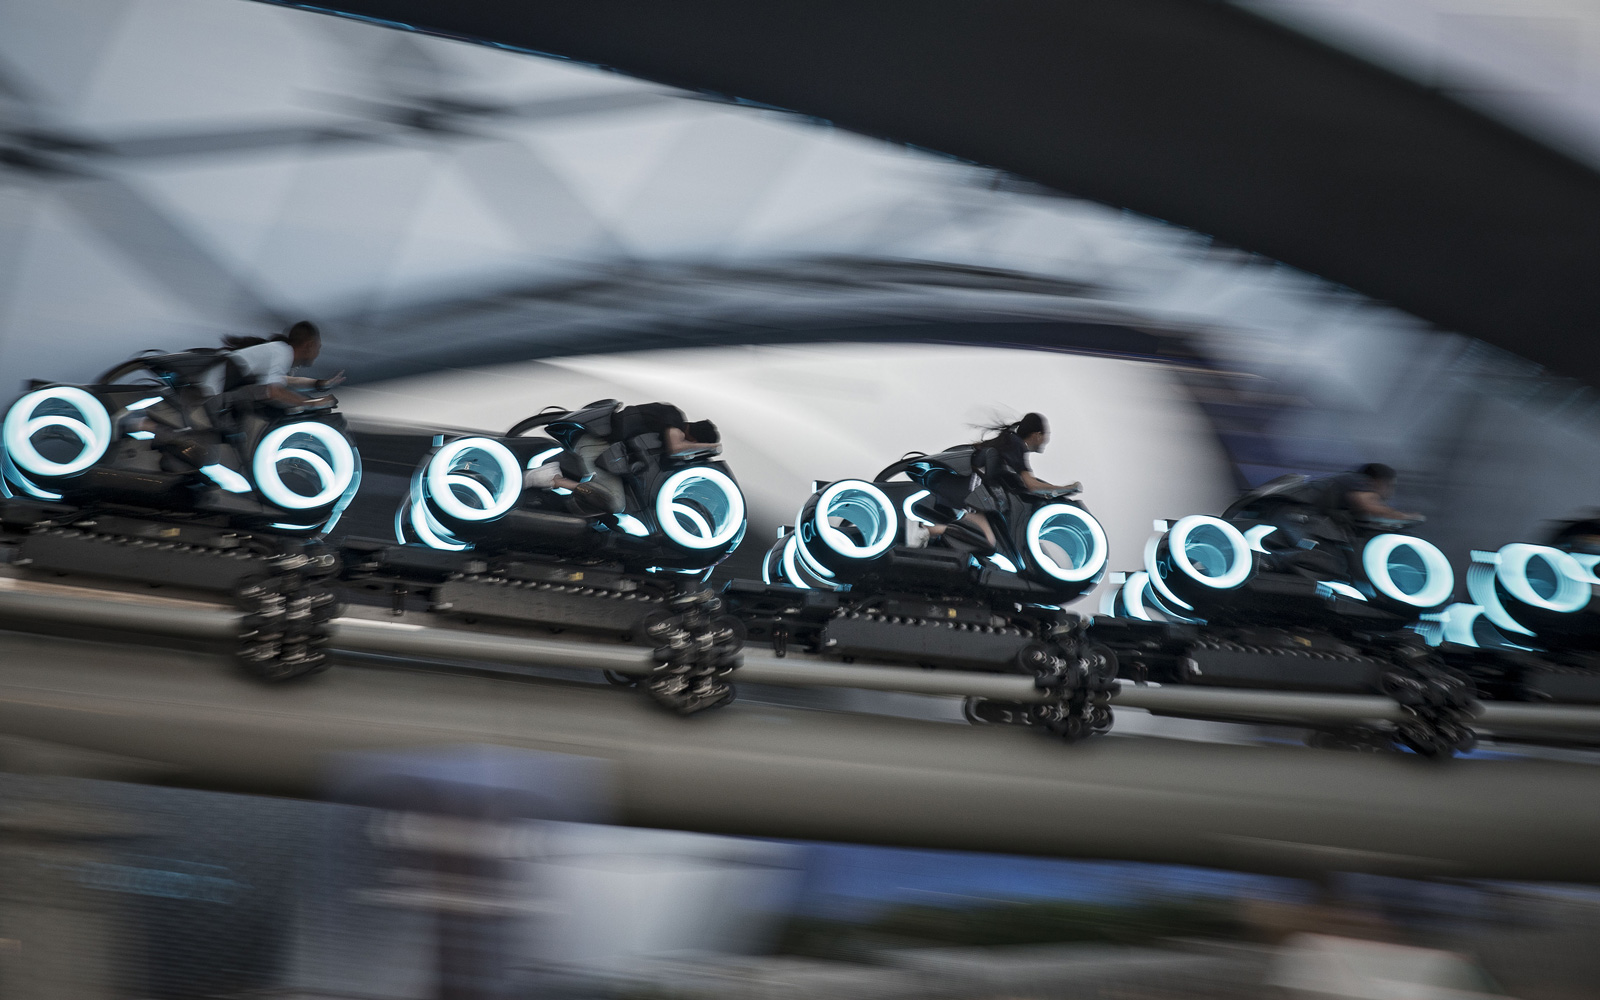 Get Excited: The Tron Roller Coaster Is Coming to Disney World